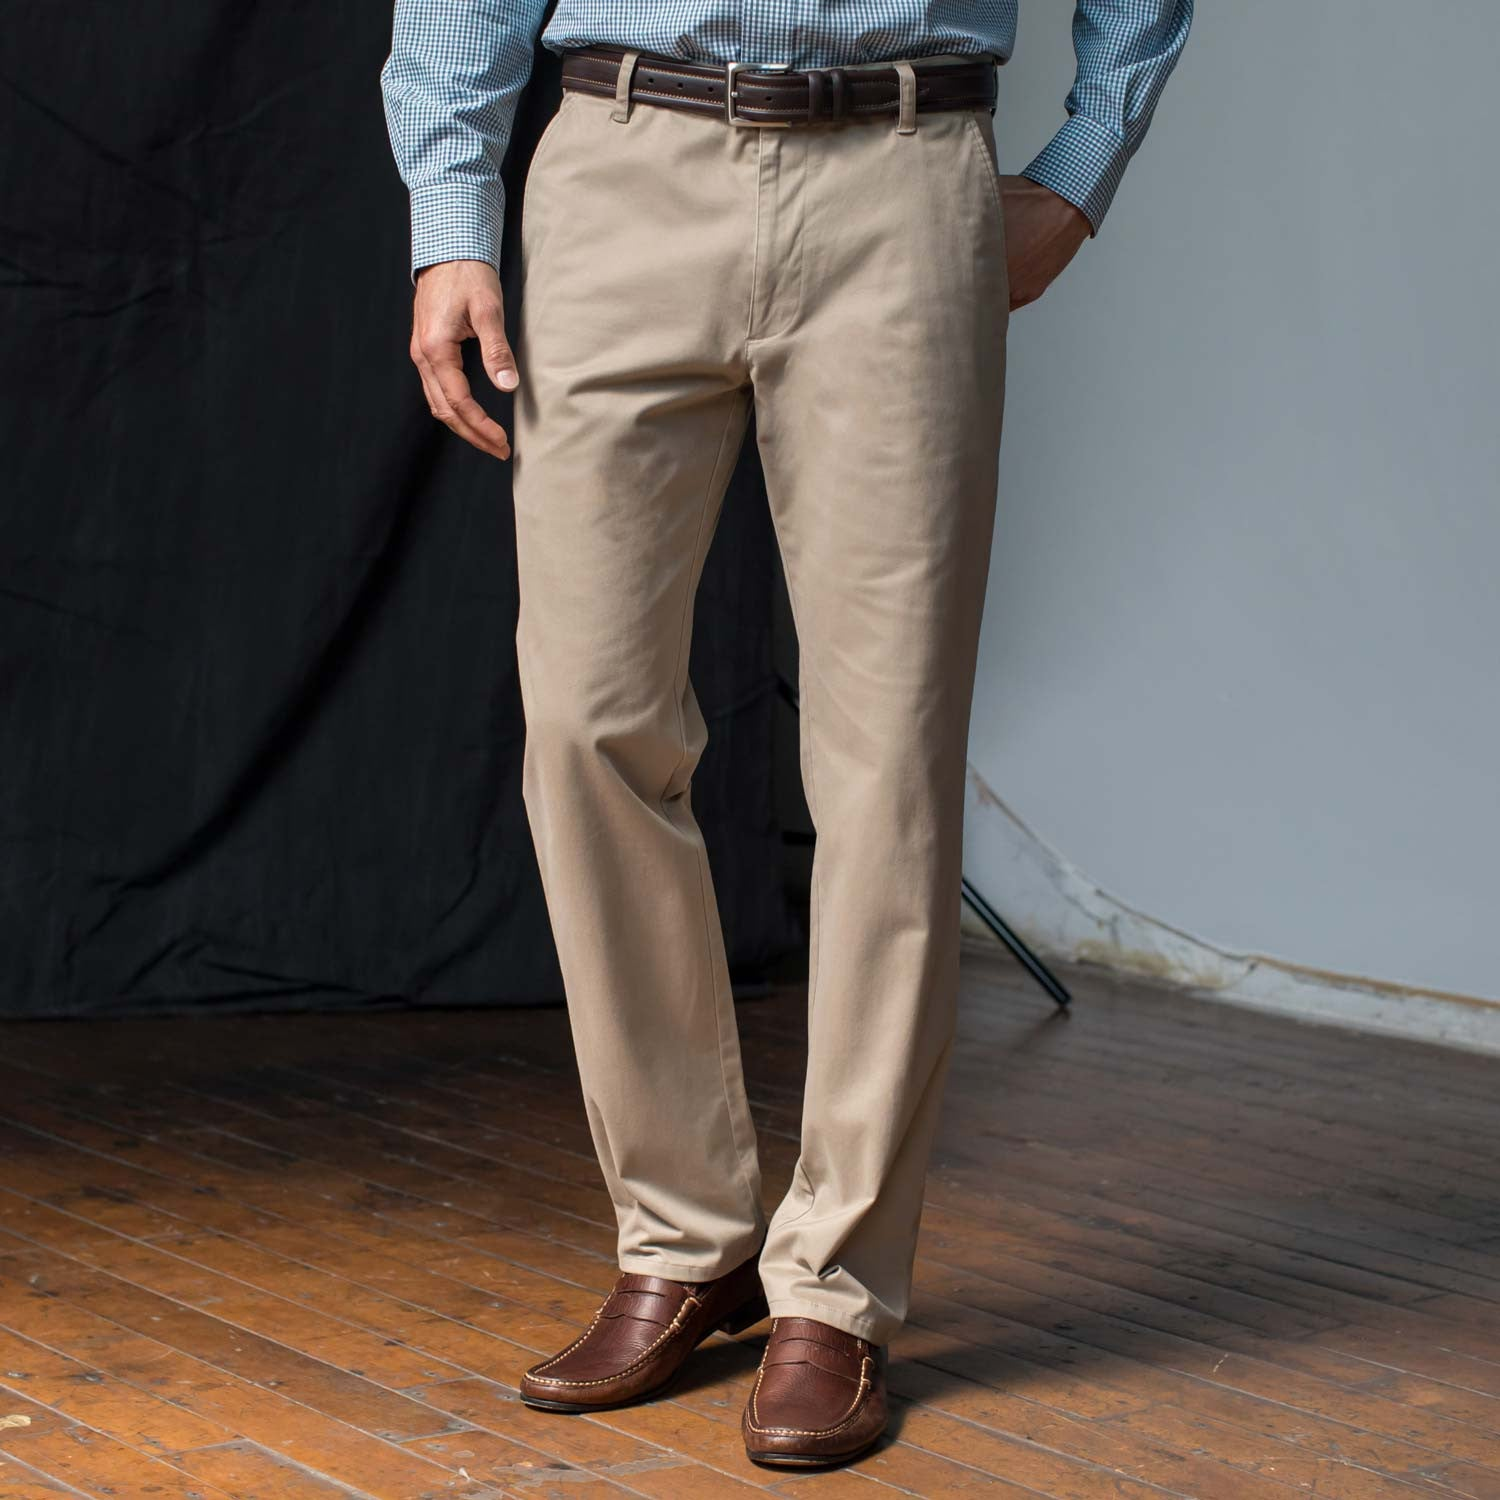 d3227d573921b Hadfield Cotton Chino Pant - Oxford